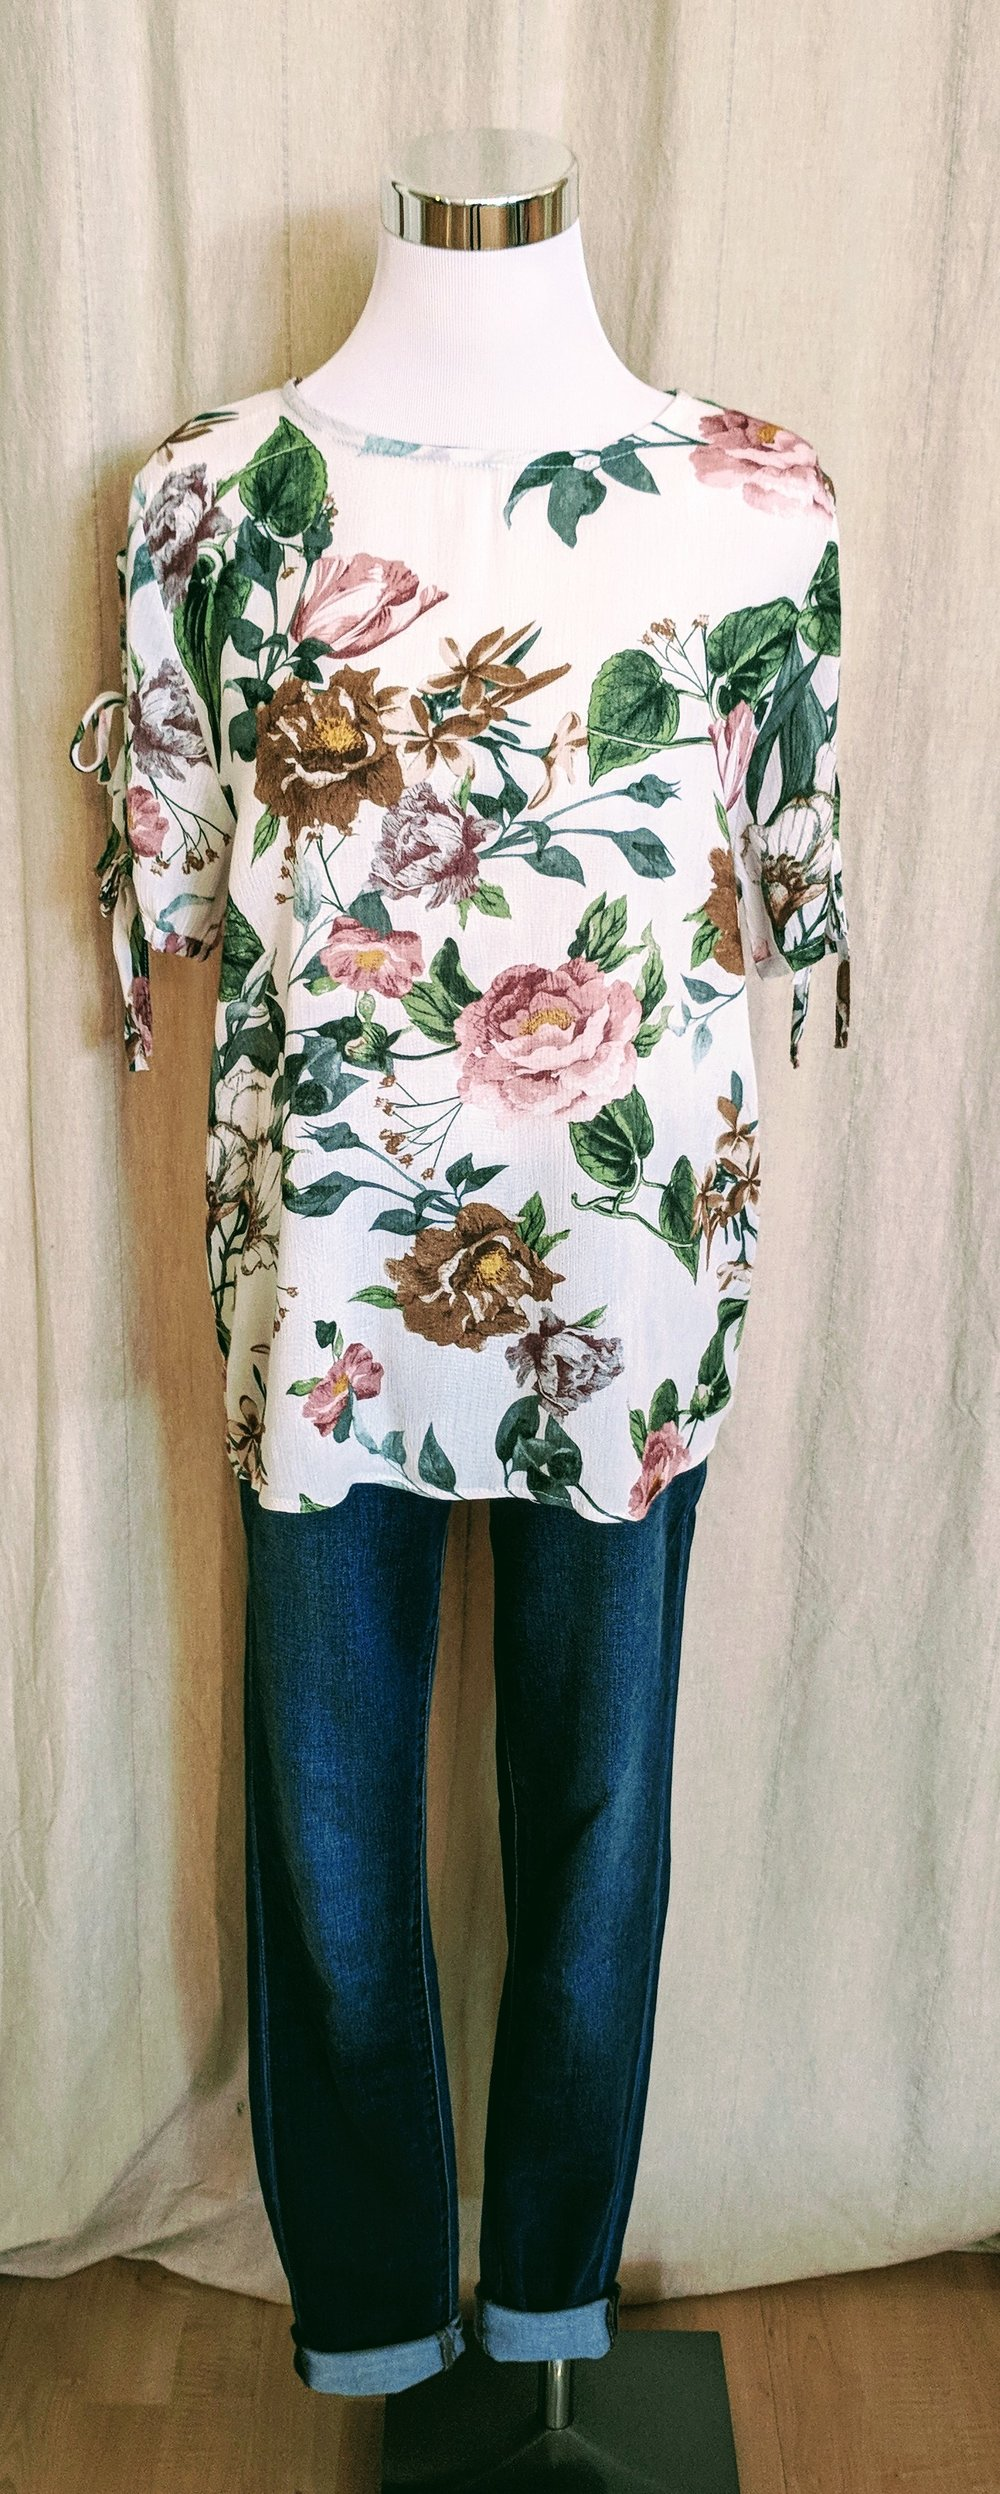 Short sleeve Vintage Floral top with Tie Detail on sleeve $32